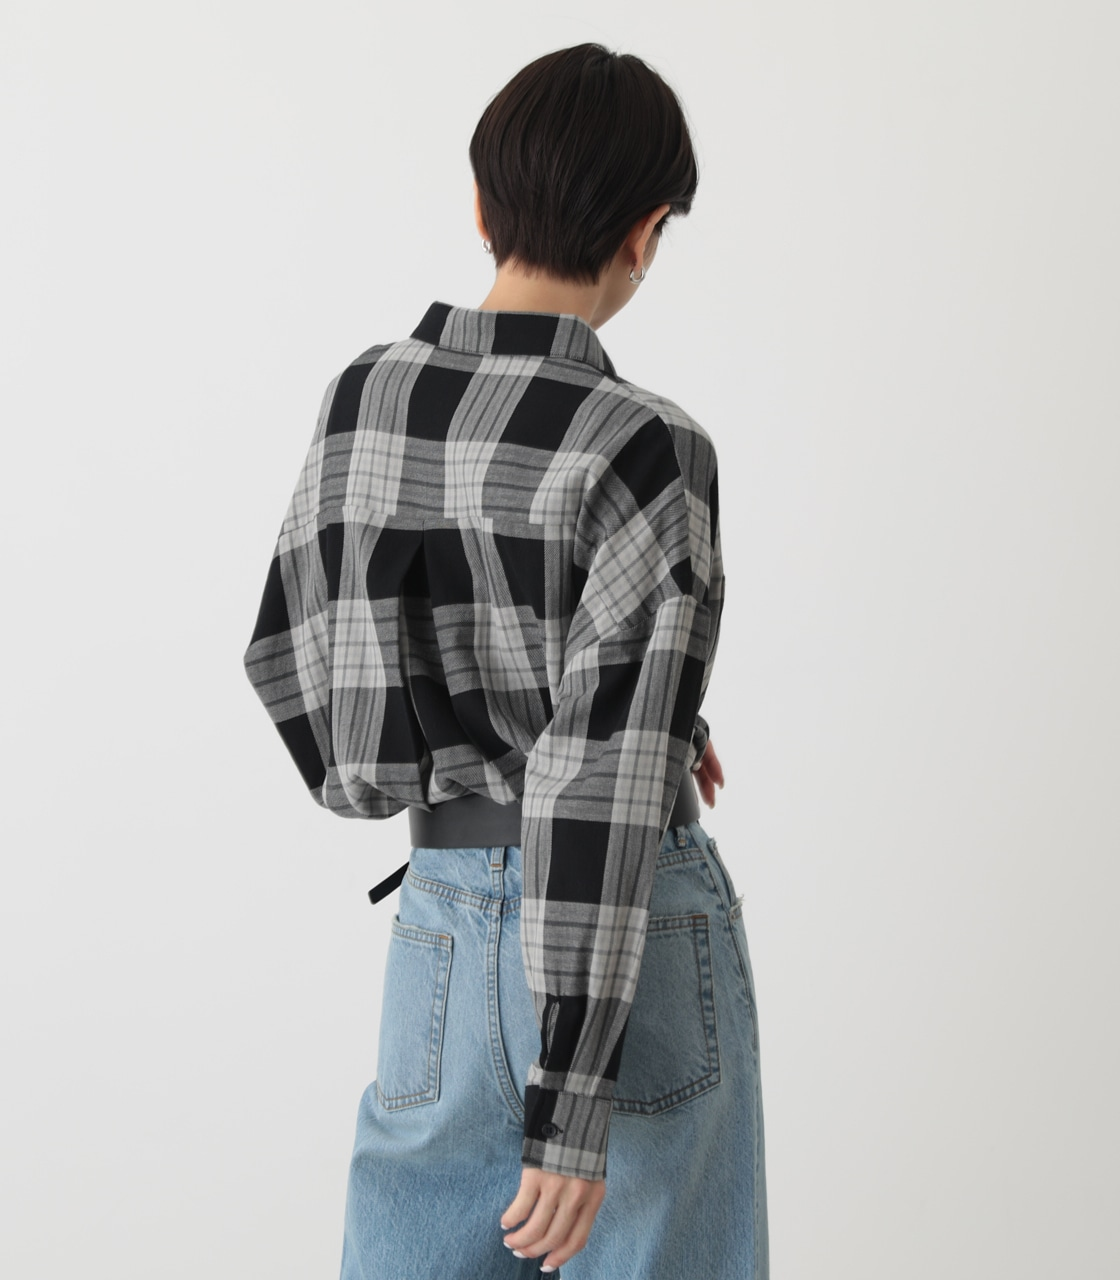 CHECK OVER SHIRT/チェックオーバーシャツ 詳細画像 柄BLK 3